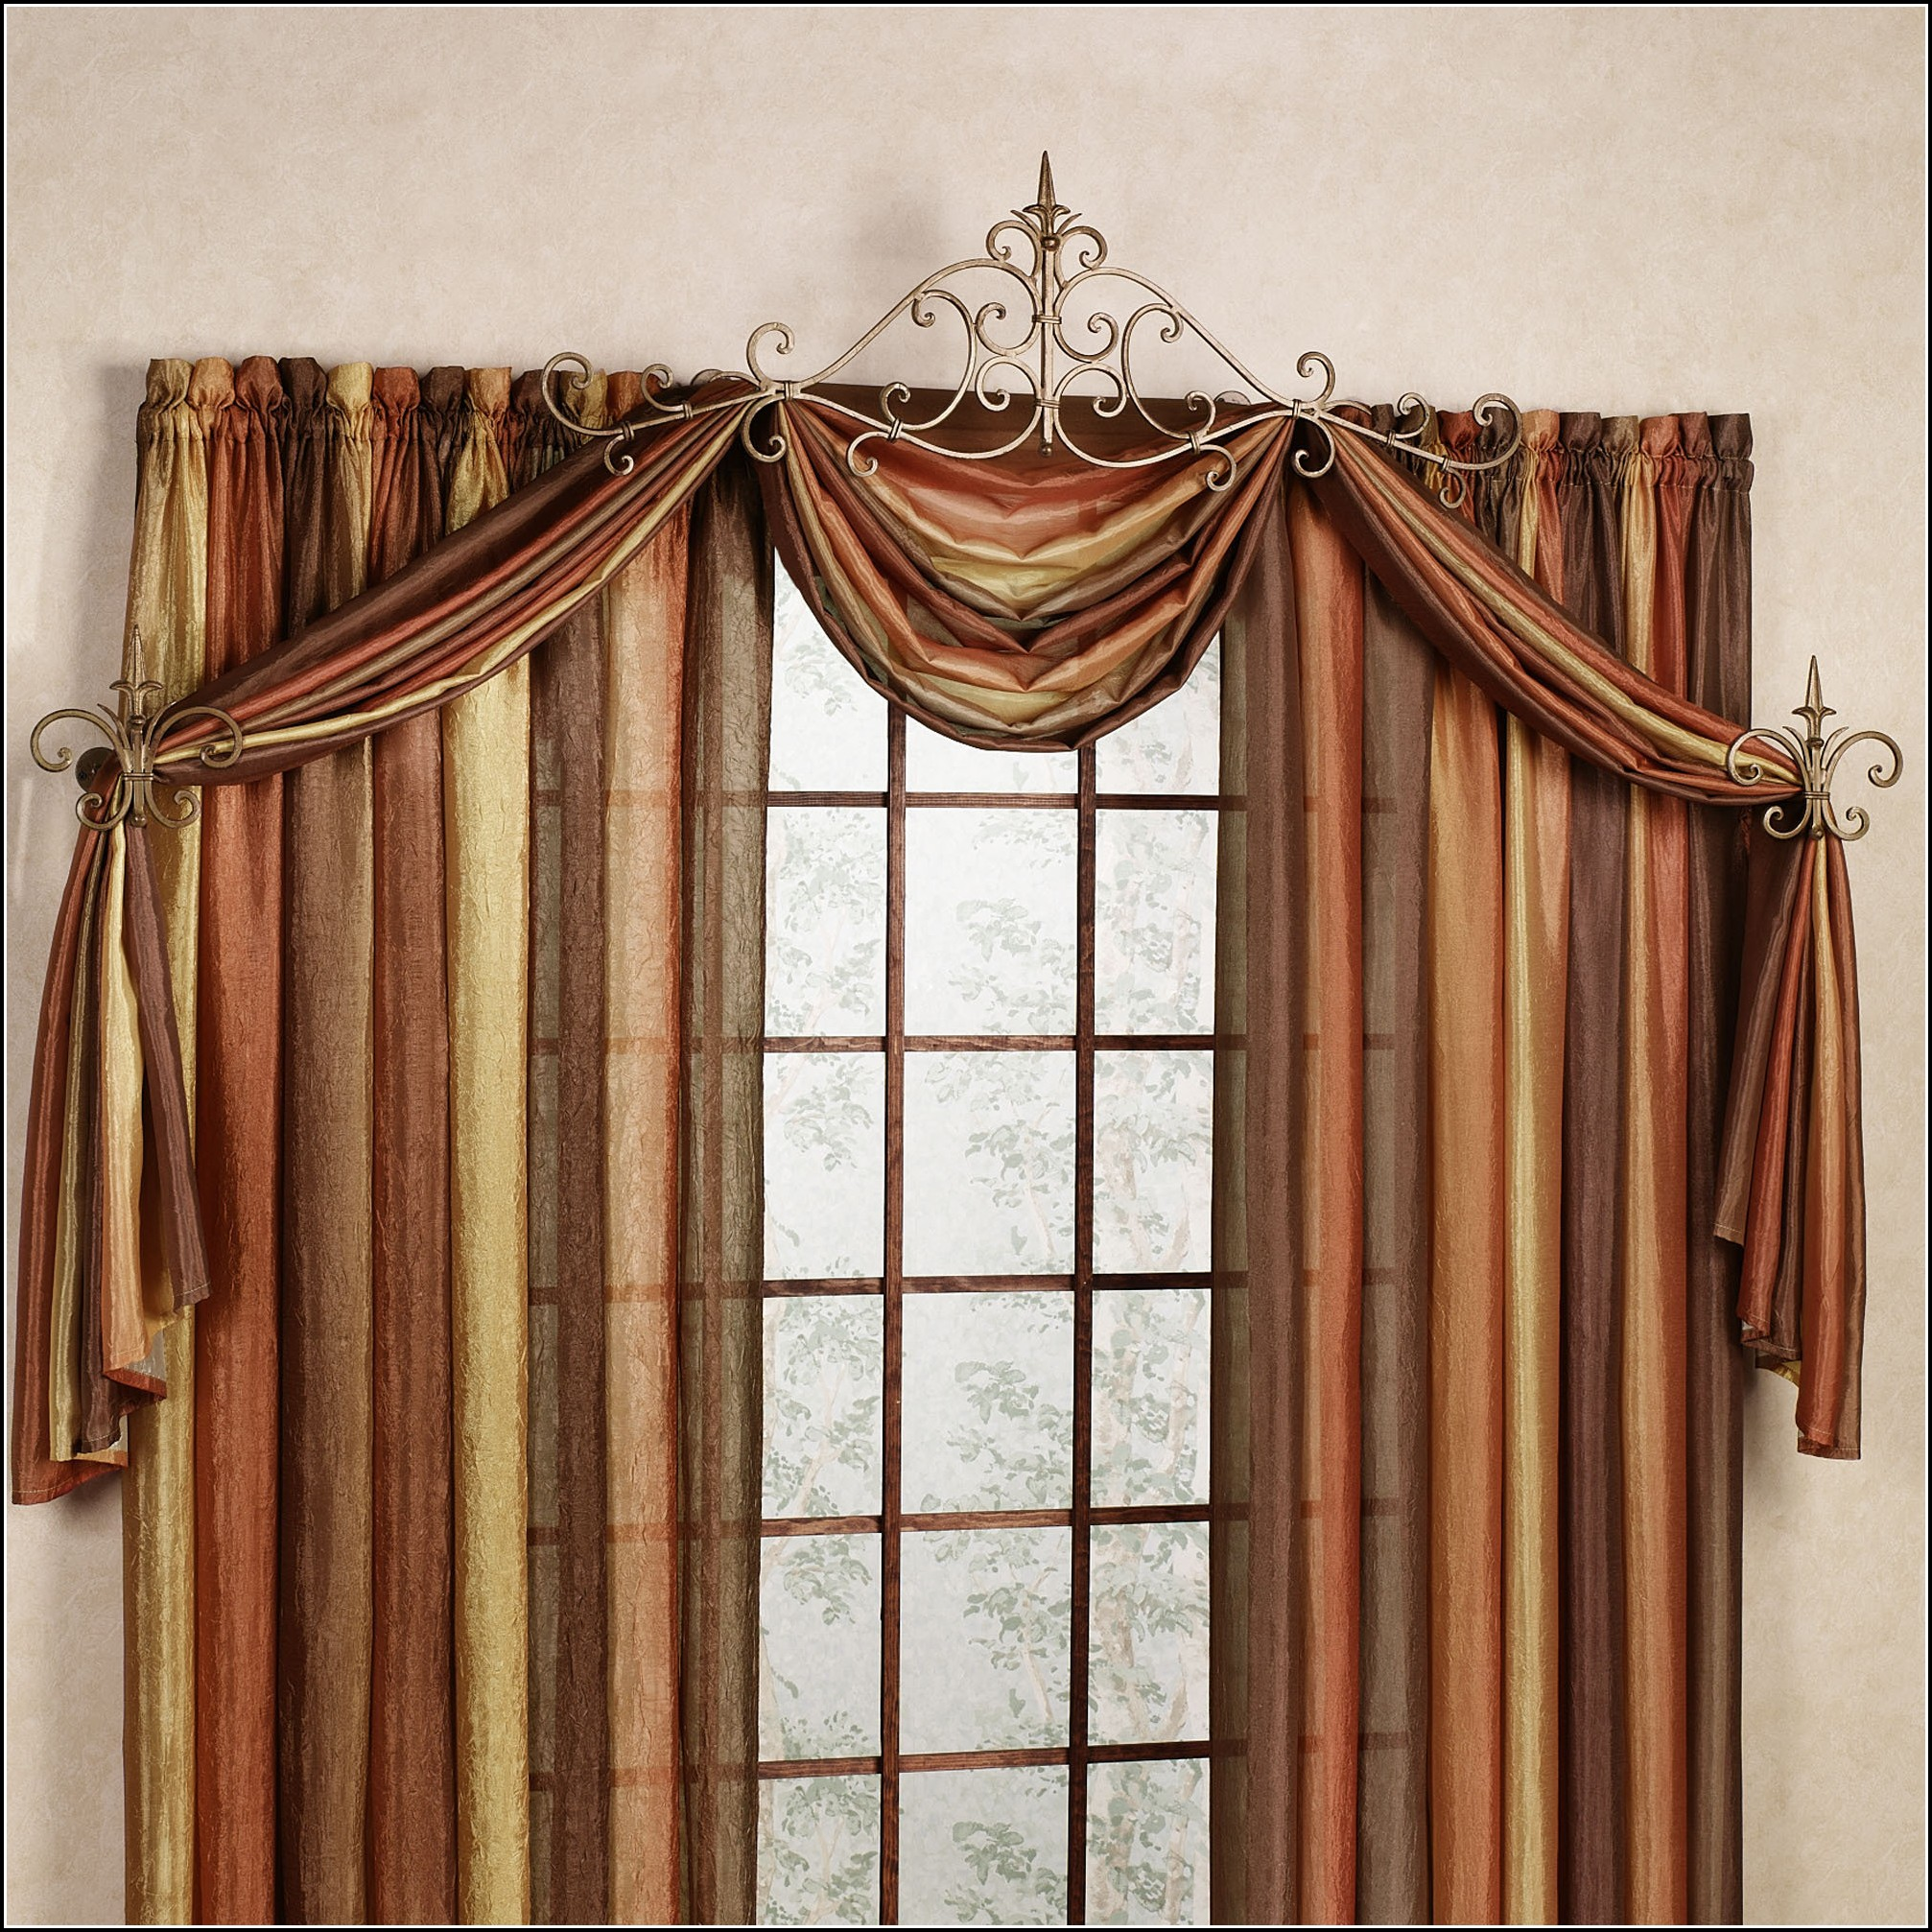 Decorative Curtain Rods And Hardware